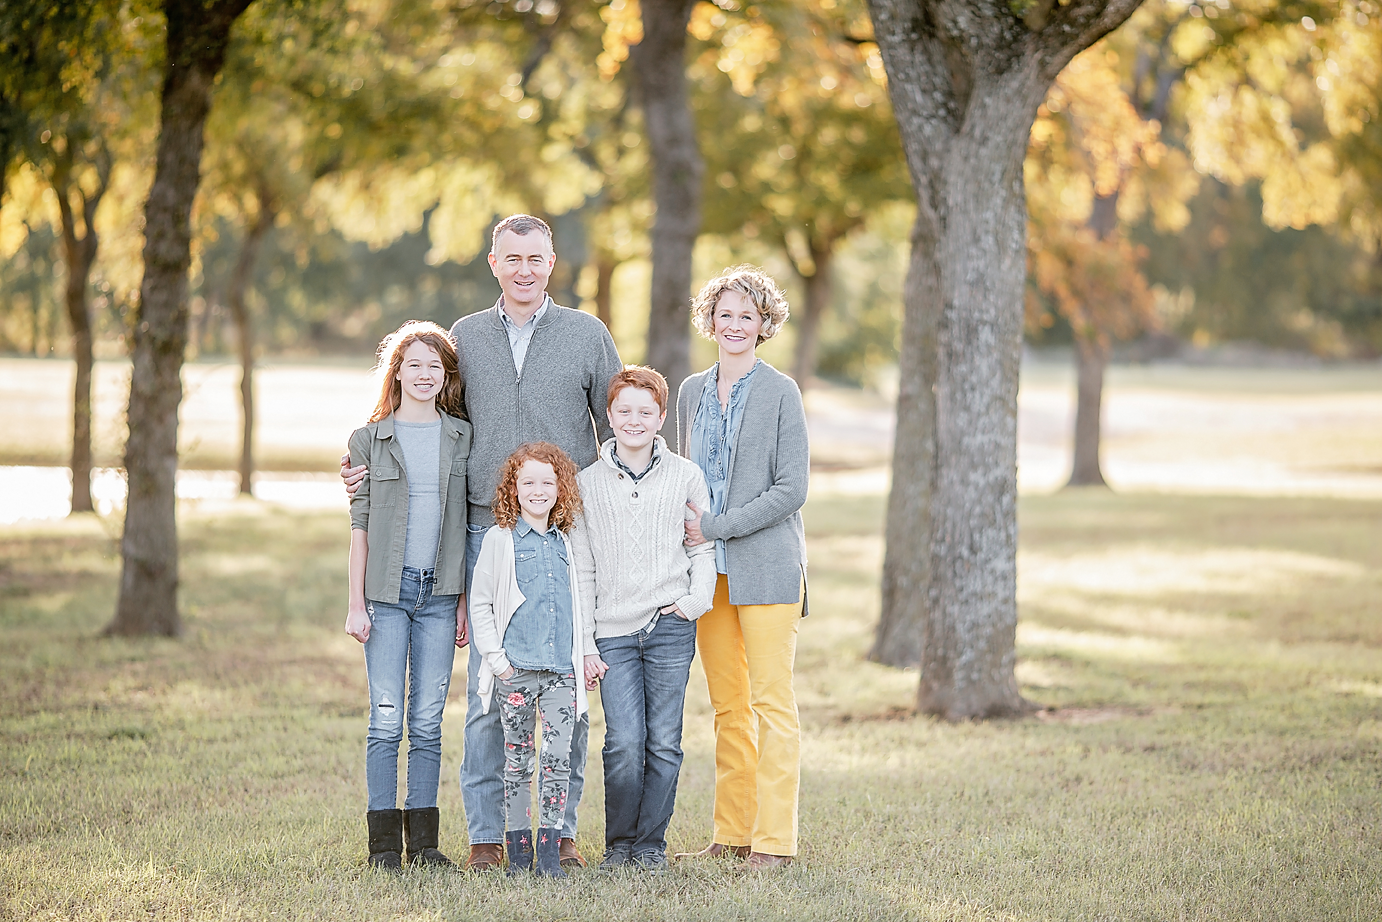 Dallas Family Photographer Southlake Photography Janning kate marie portraiture 3.png